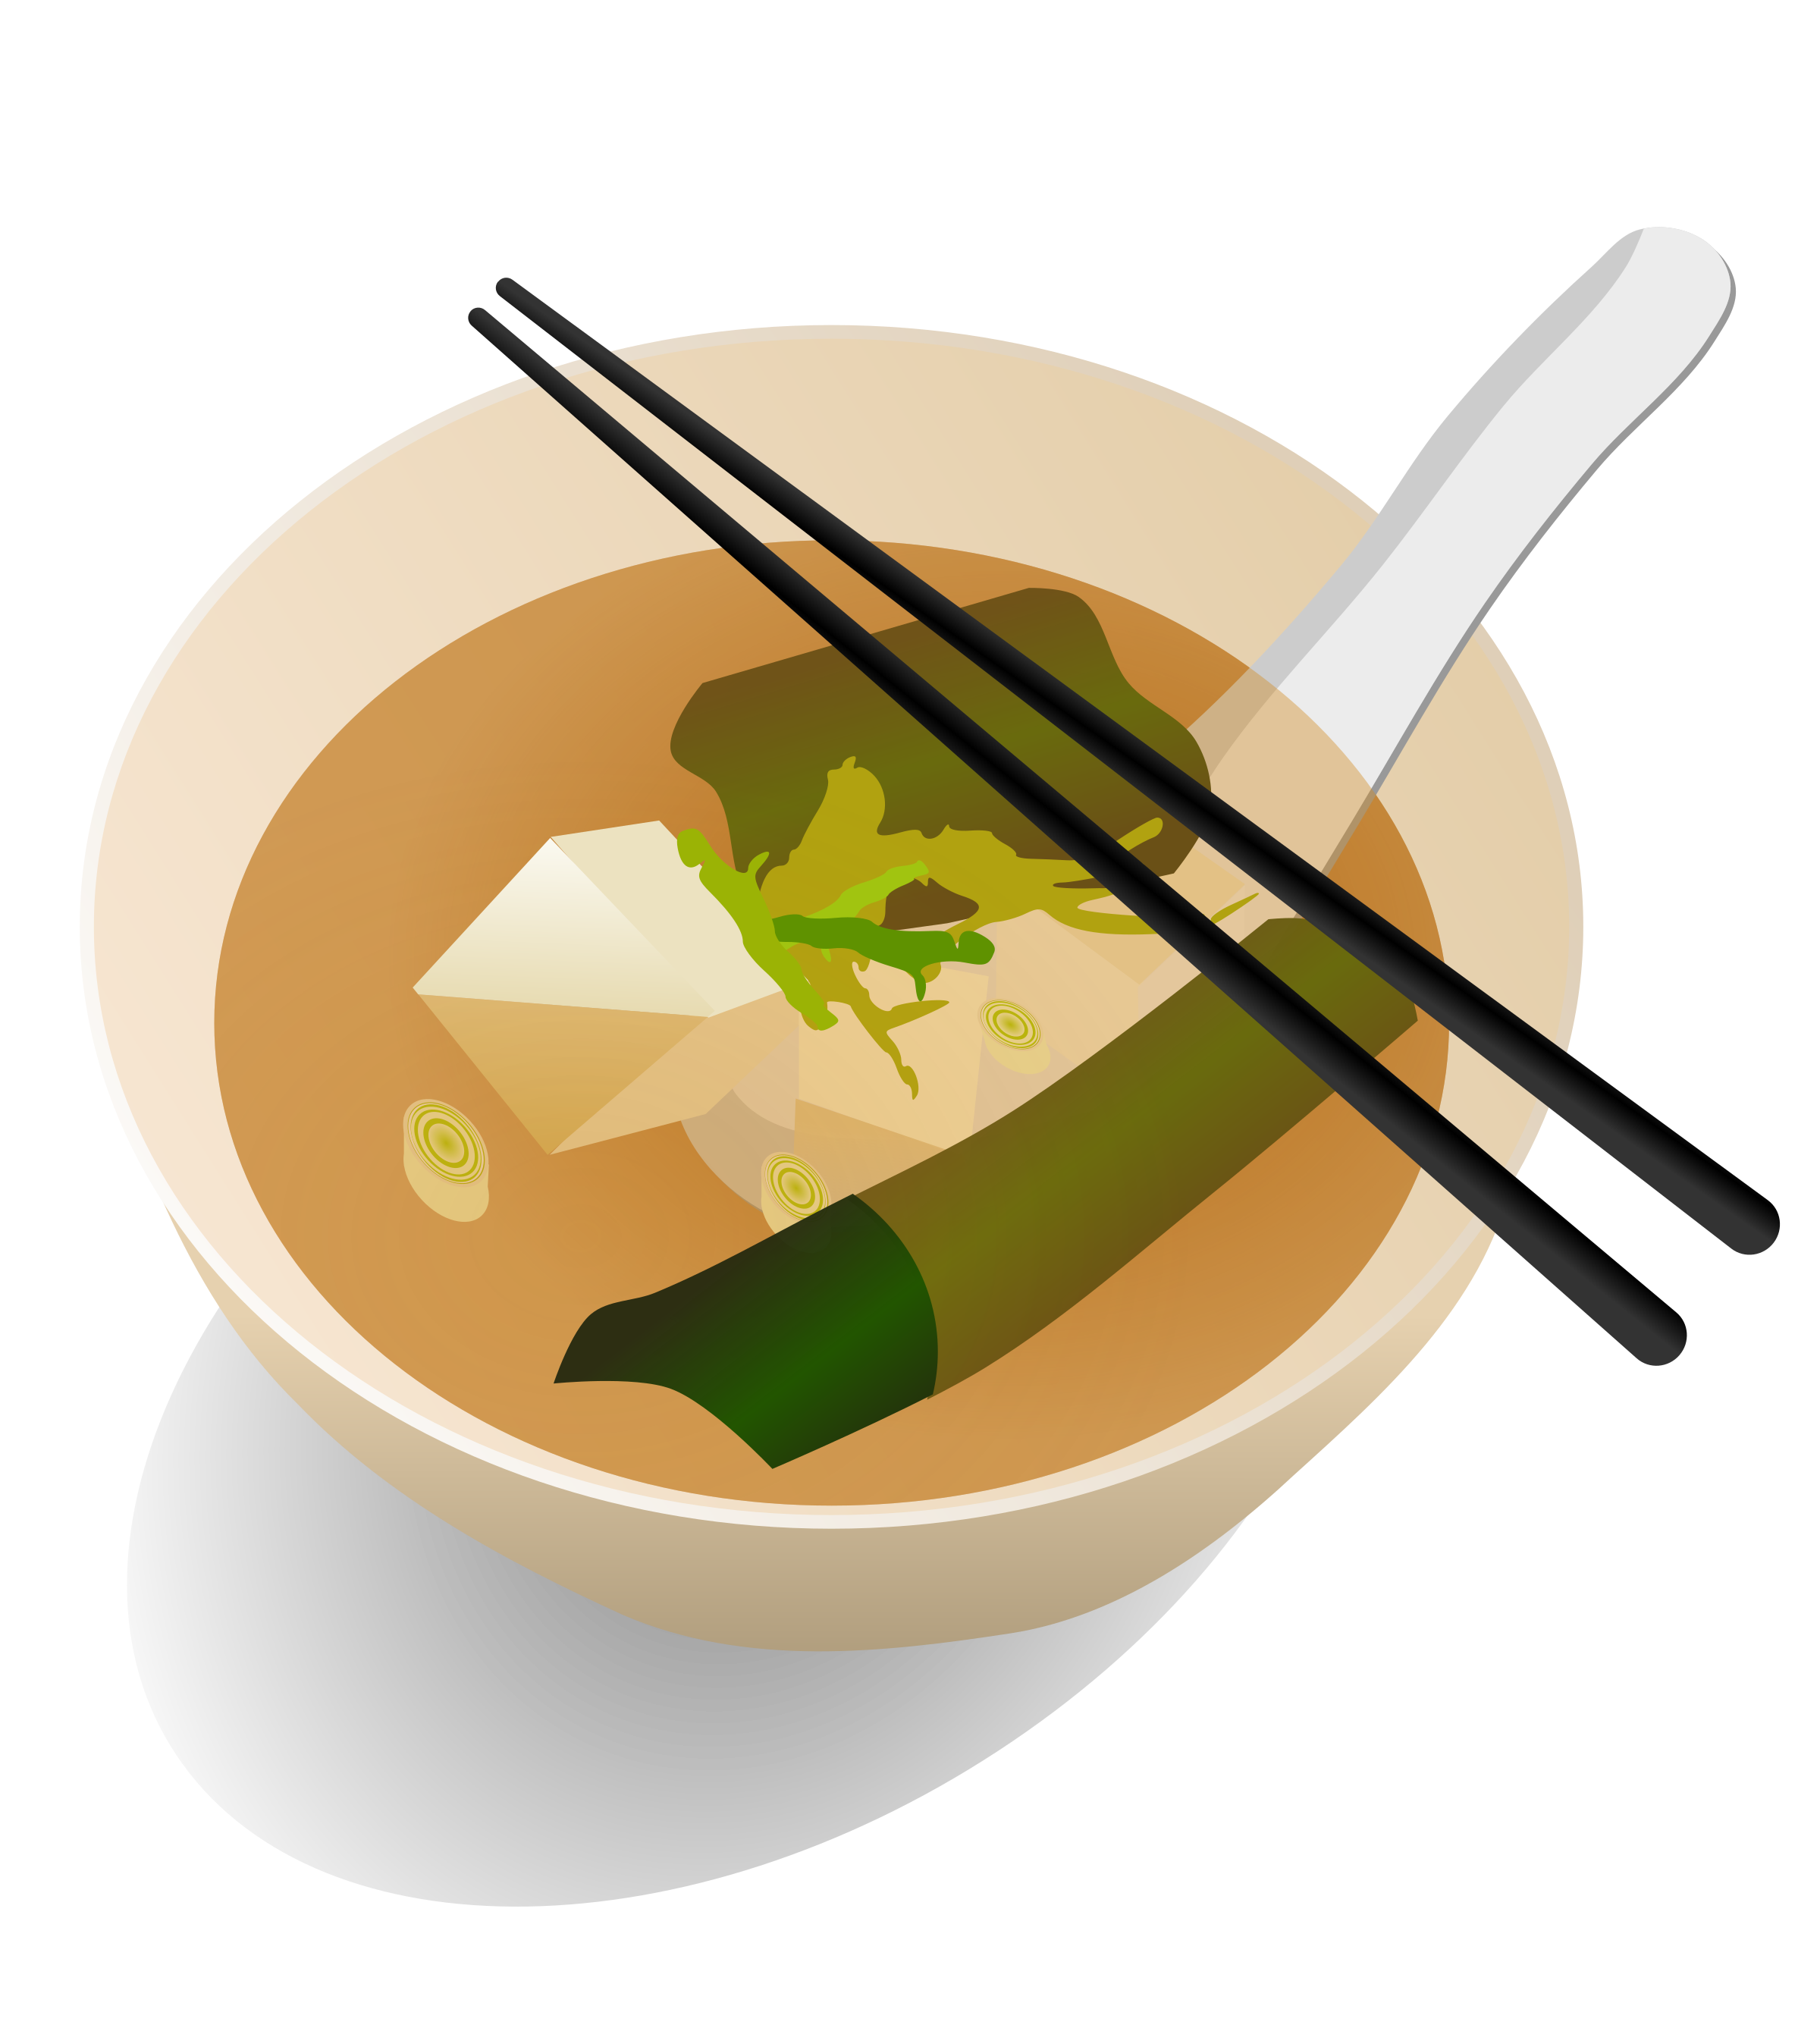 Bowl transparent soup. Clipart miso big image